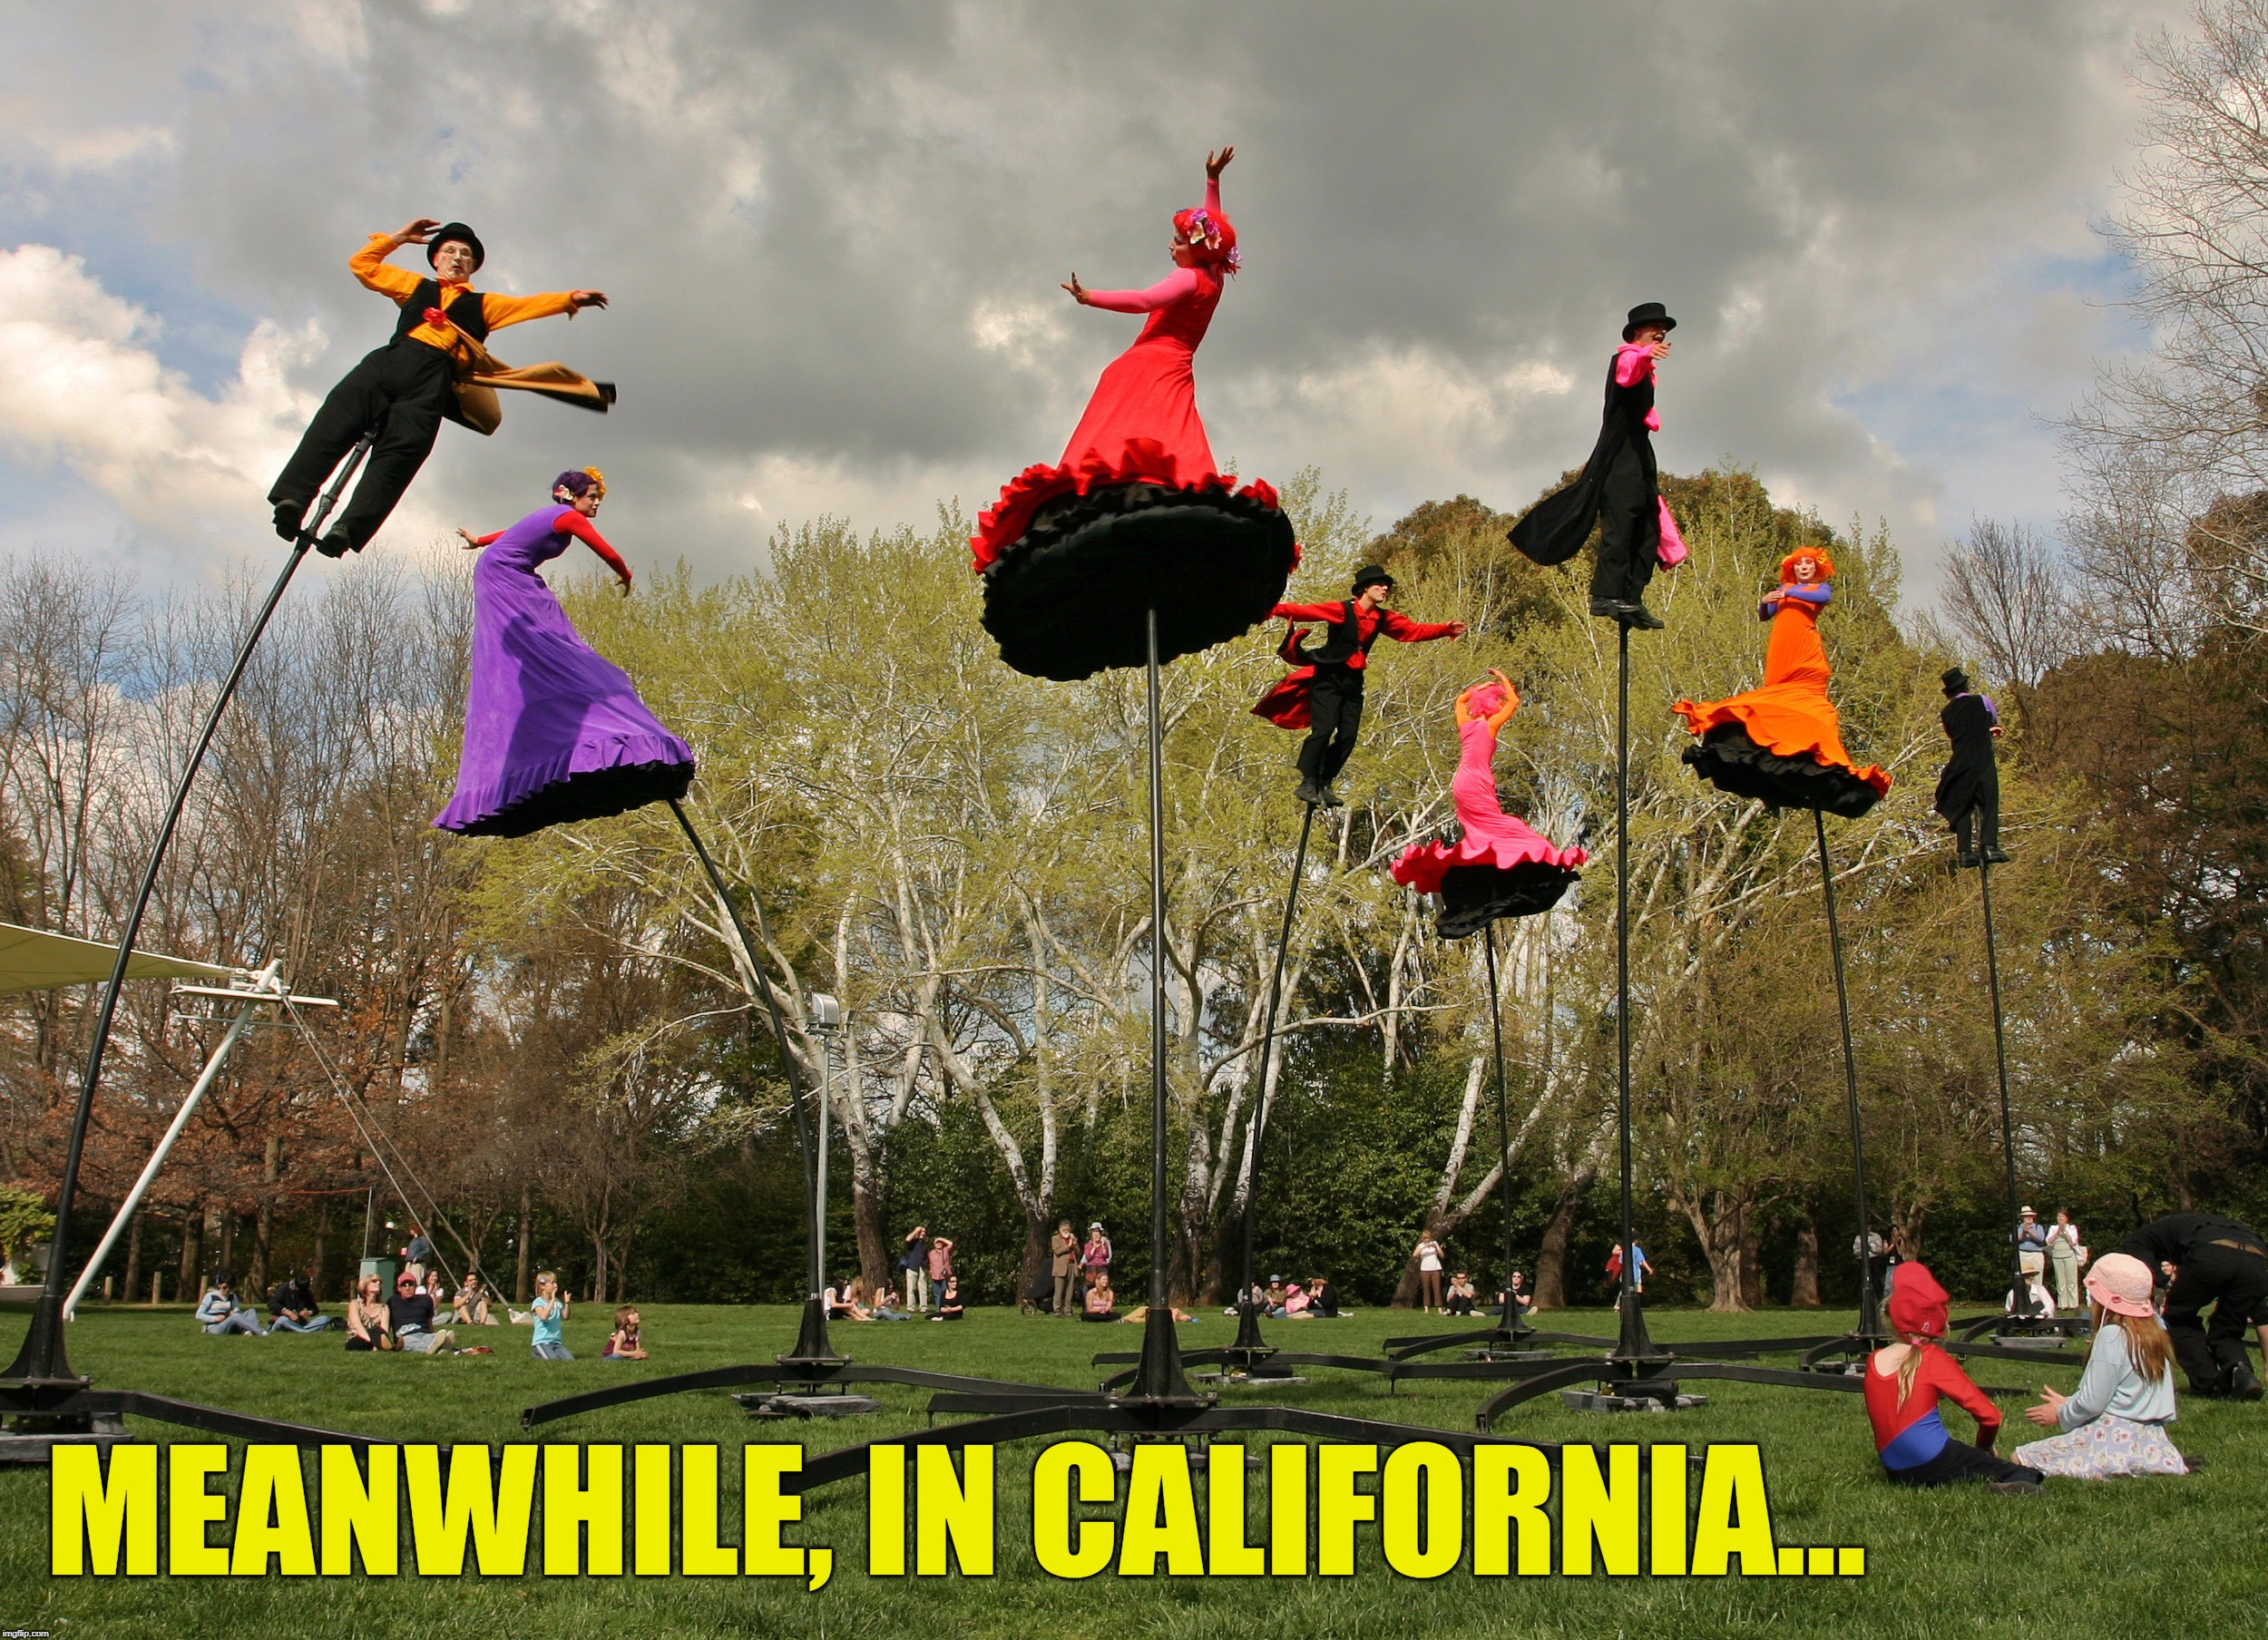 La La Land | MEANWHILE, IN CALIFORNIA... | image tagged in vince vance,california | made w/ Imgflip meme maker